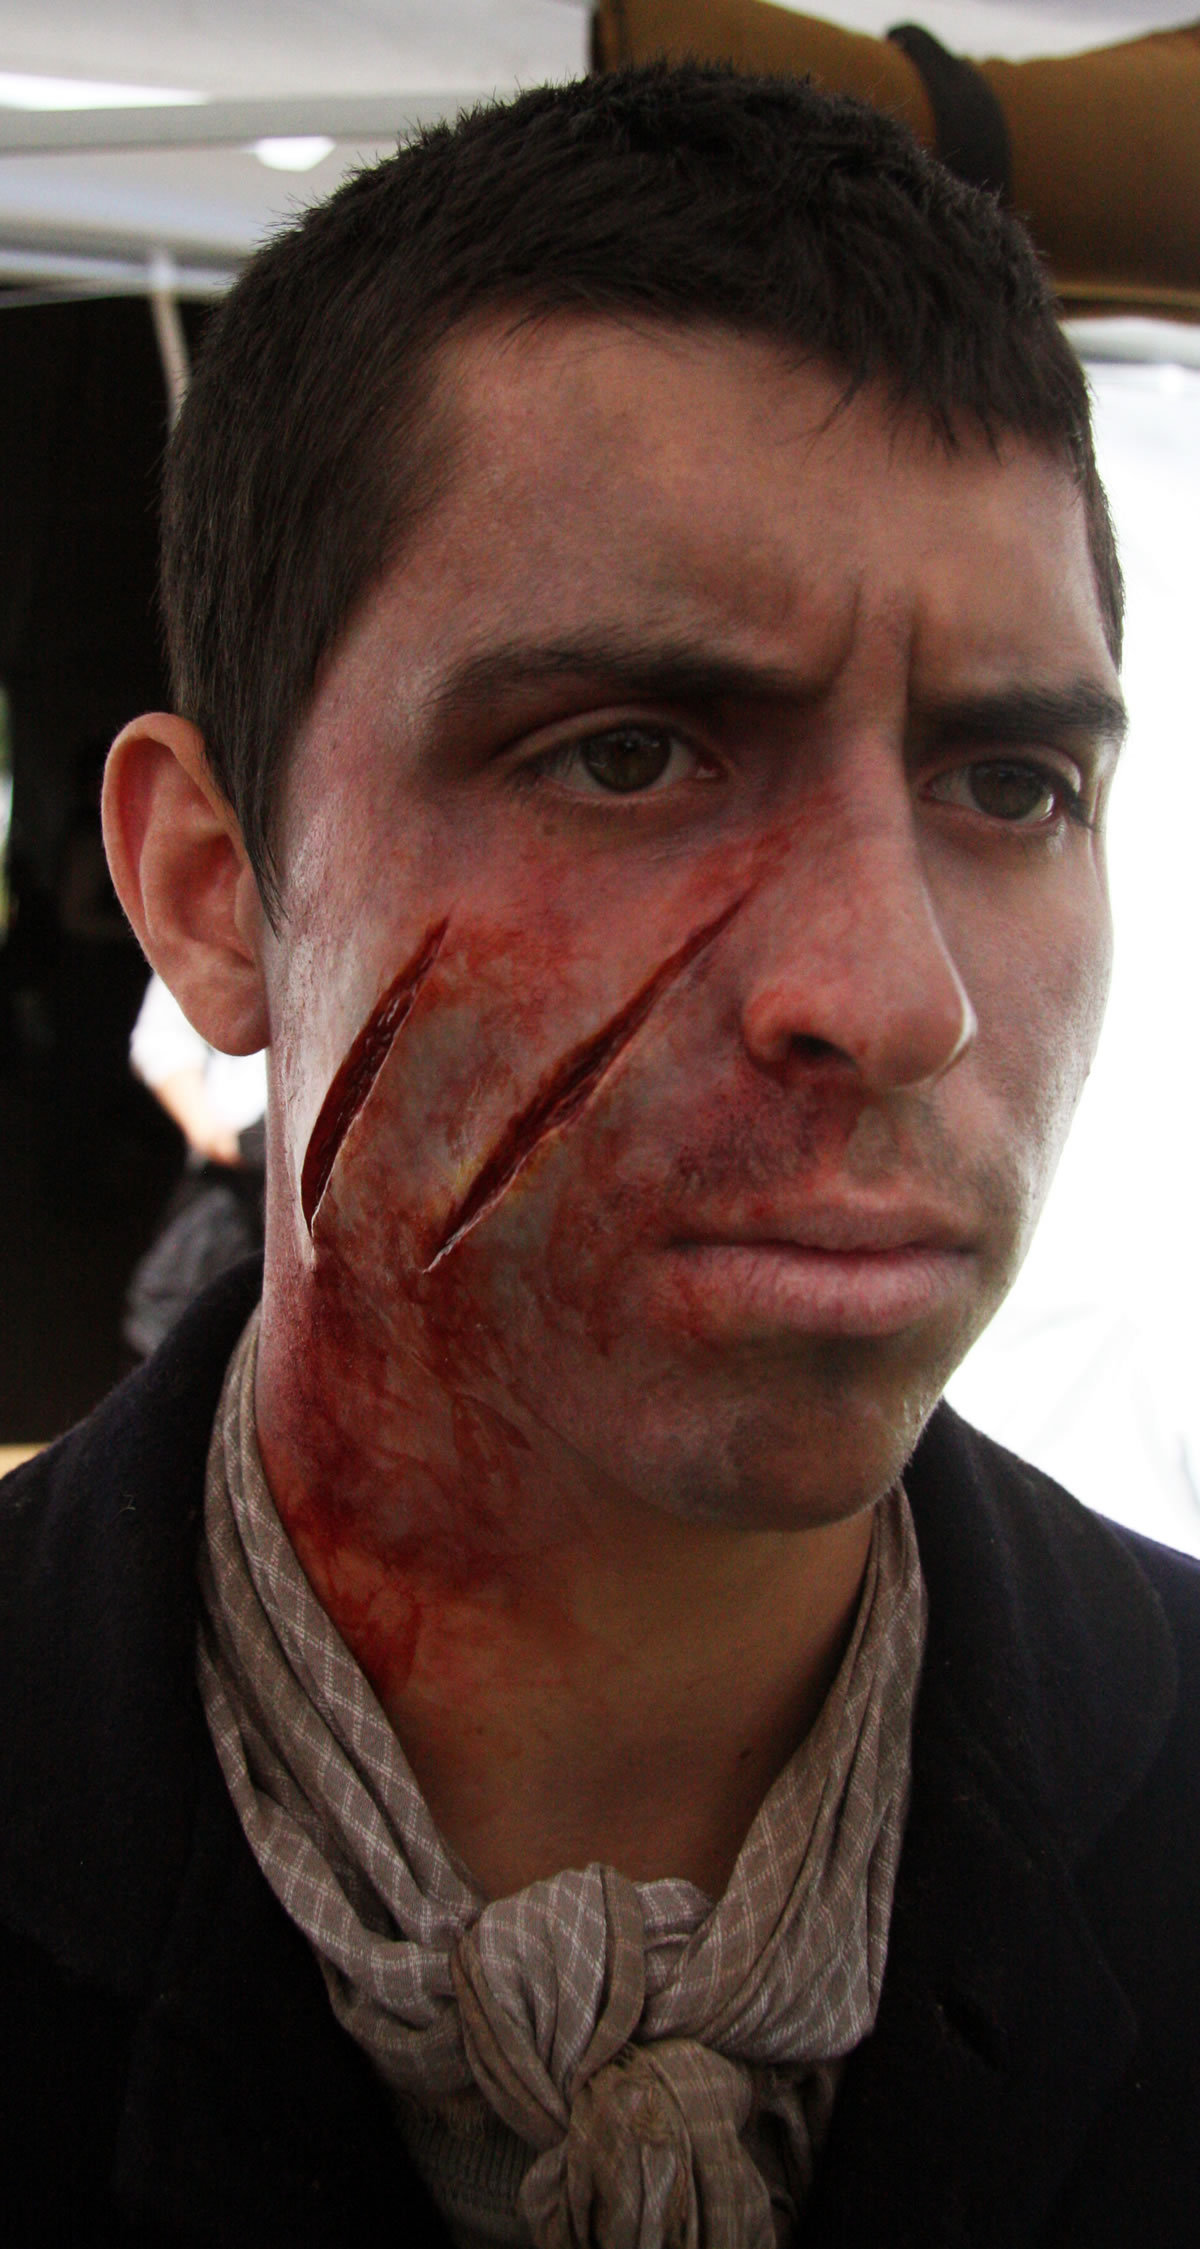 Silicone lacerations for the film 'Abe Lincoln-Vampire Hunter'